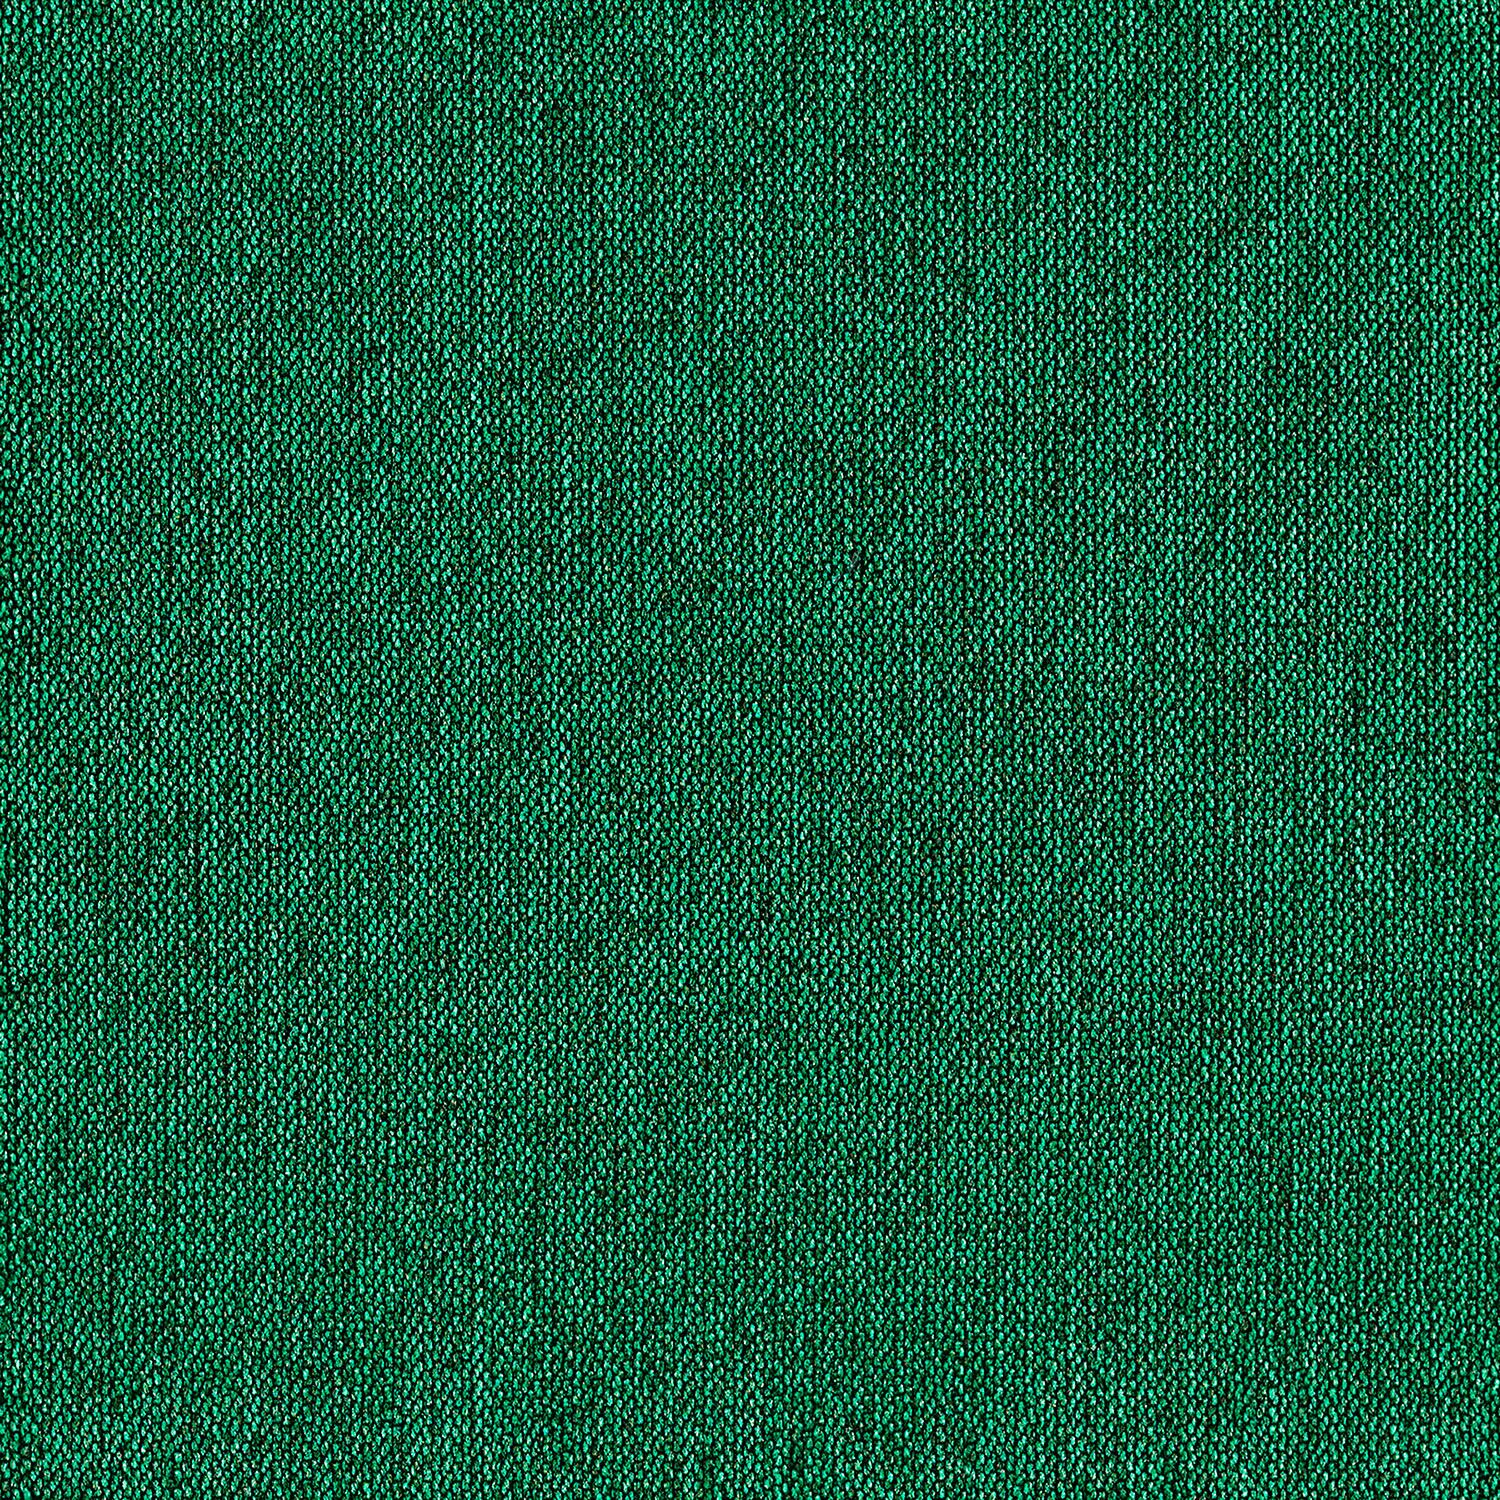 Percept - Propagate - 4040 - 25 Tileable Swatches